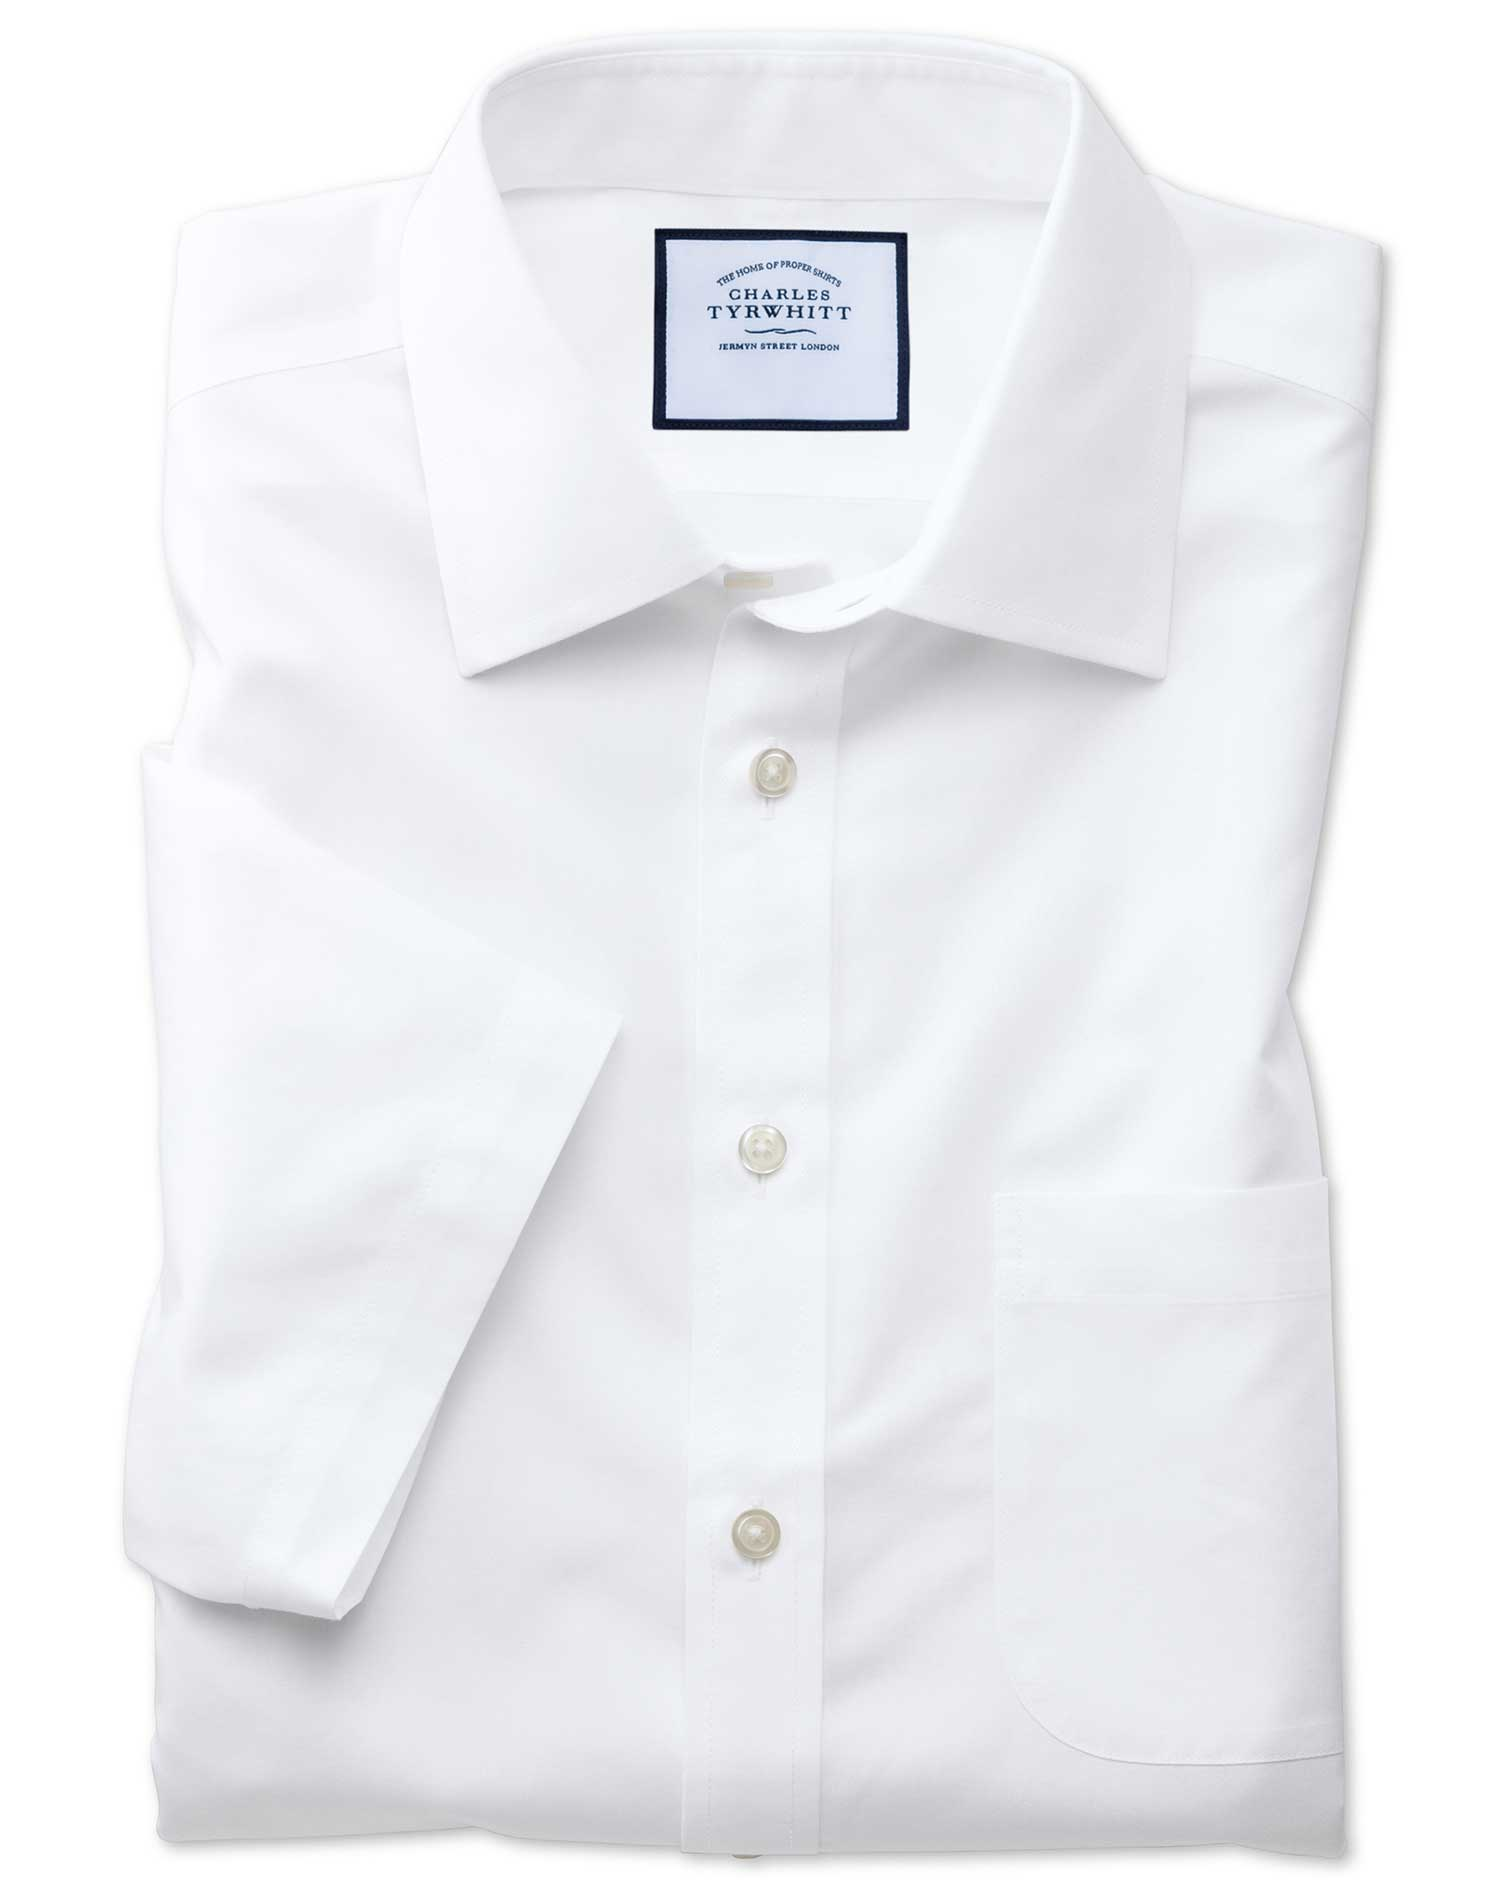 Slim Fit Non-Iron Poplin Short Sleeve White Cotton Formal Shirt Size 15/Short by Charles Tyrwhitt